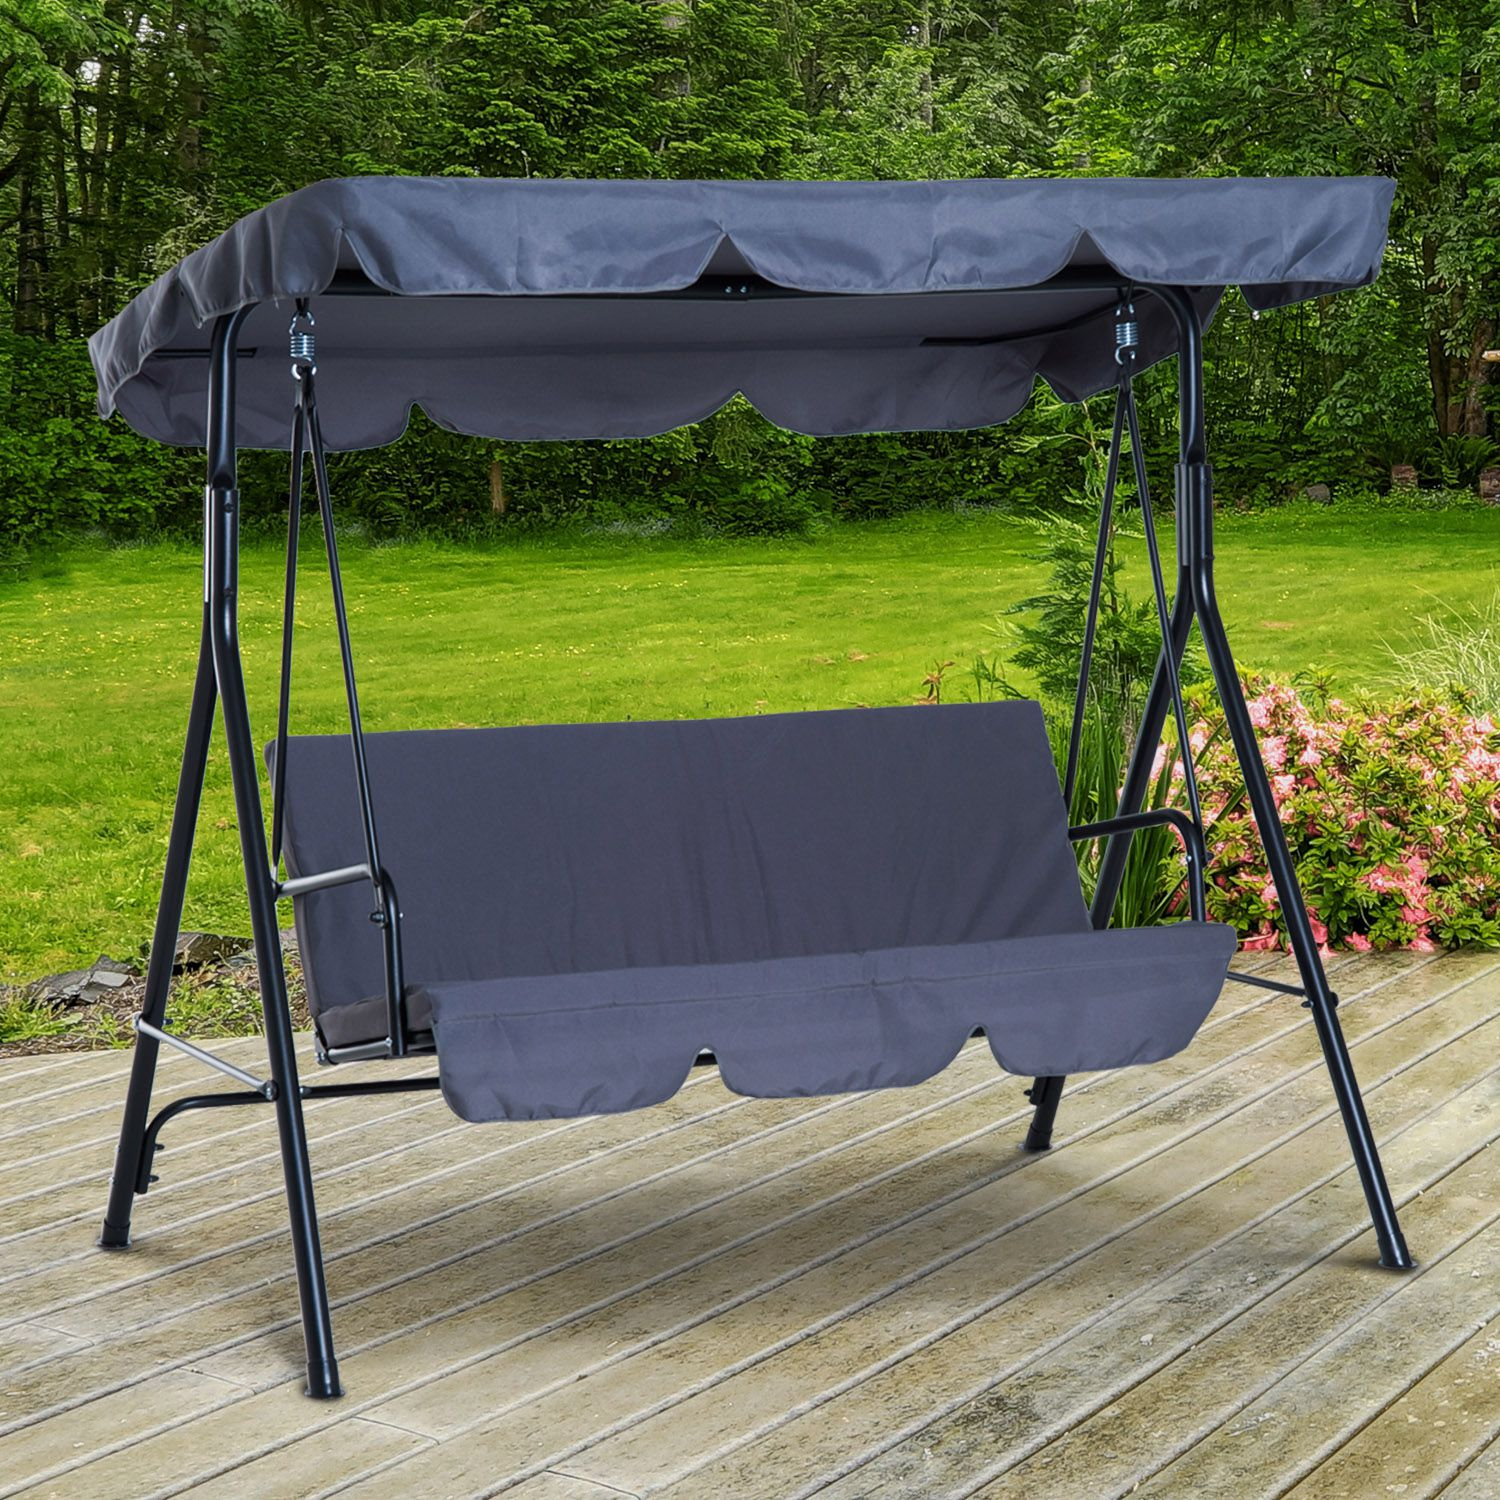 Outsunny Metal 3 Seater Outdoor Patio Swing With Canopy Cushioned Garden Lounger Grey Throughout 3 Person Red With Brown Powder Coated Frame Steel Outdoor Swings (View 22 of 25)